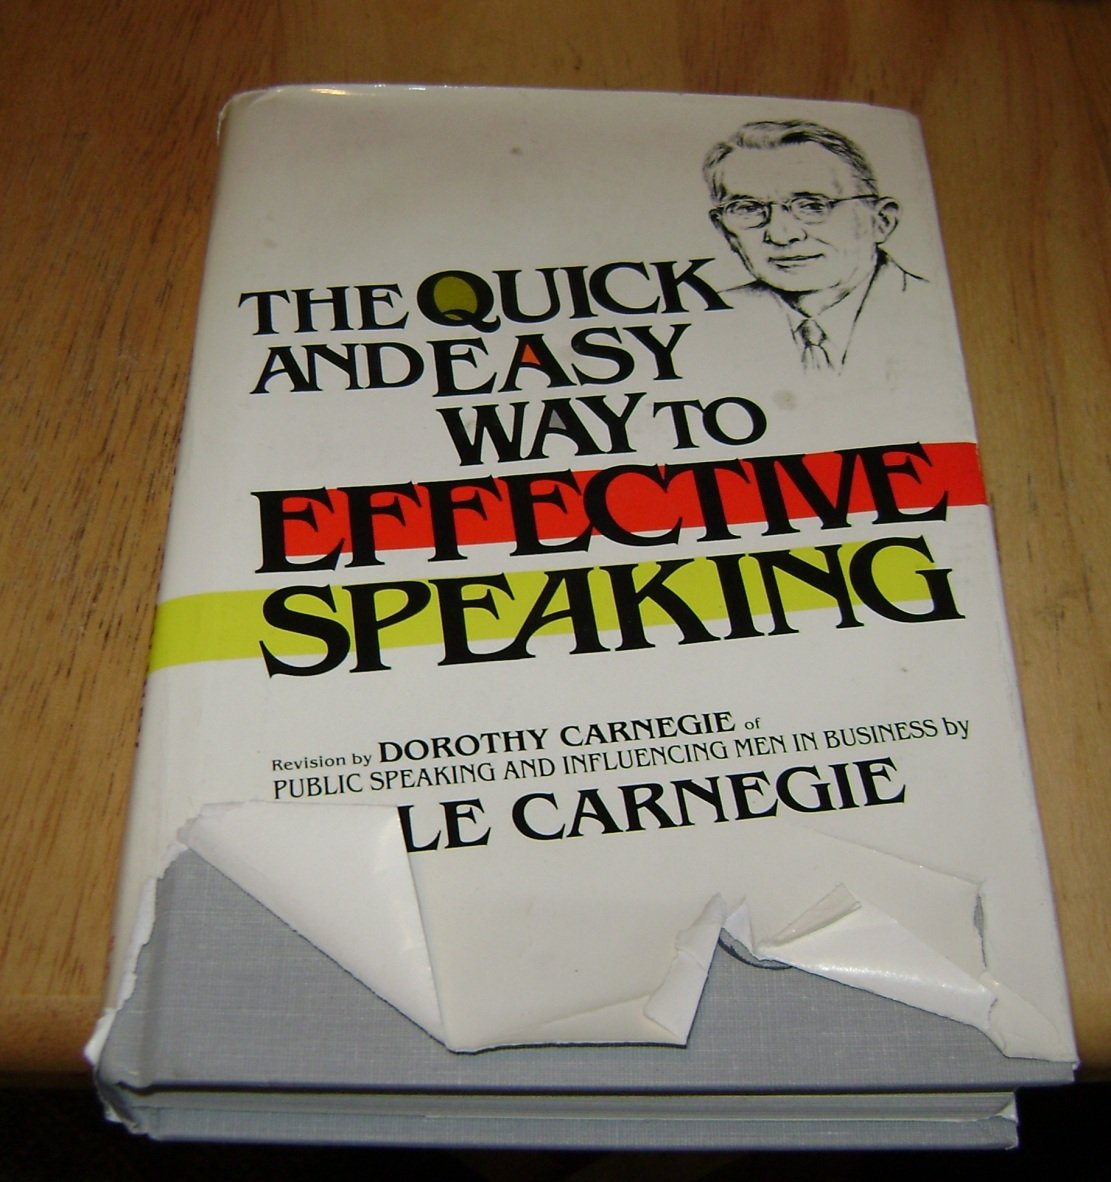 Qucik & easy way to effective speaking Dale Carnegie HC